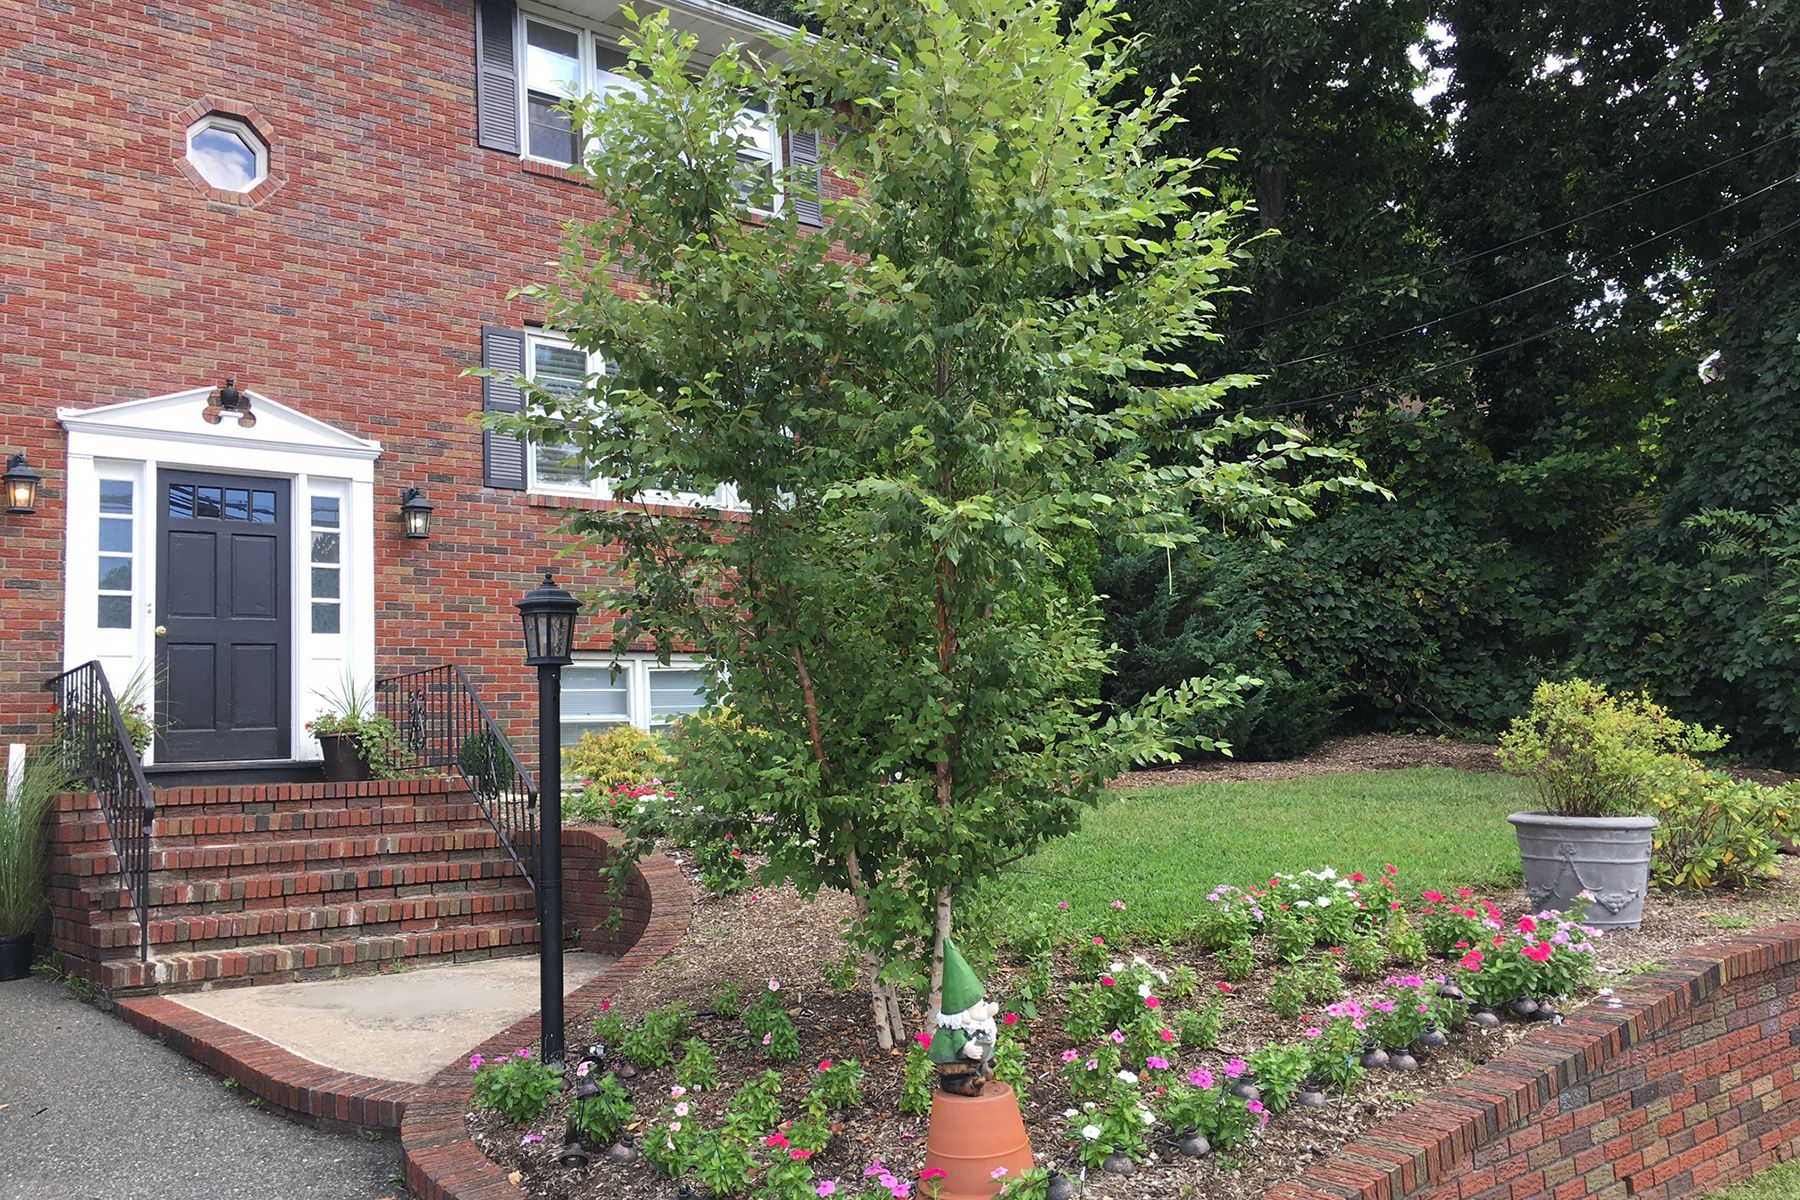 Multi-Family Home for Rent at Recently Renovated Two Family. 95 Rock Road Unit 2, Hawthorne, New Jersey 07506 United States